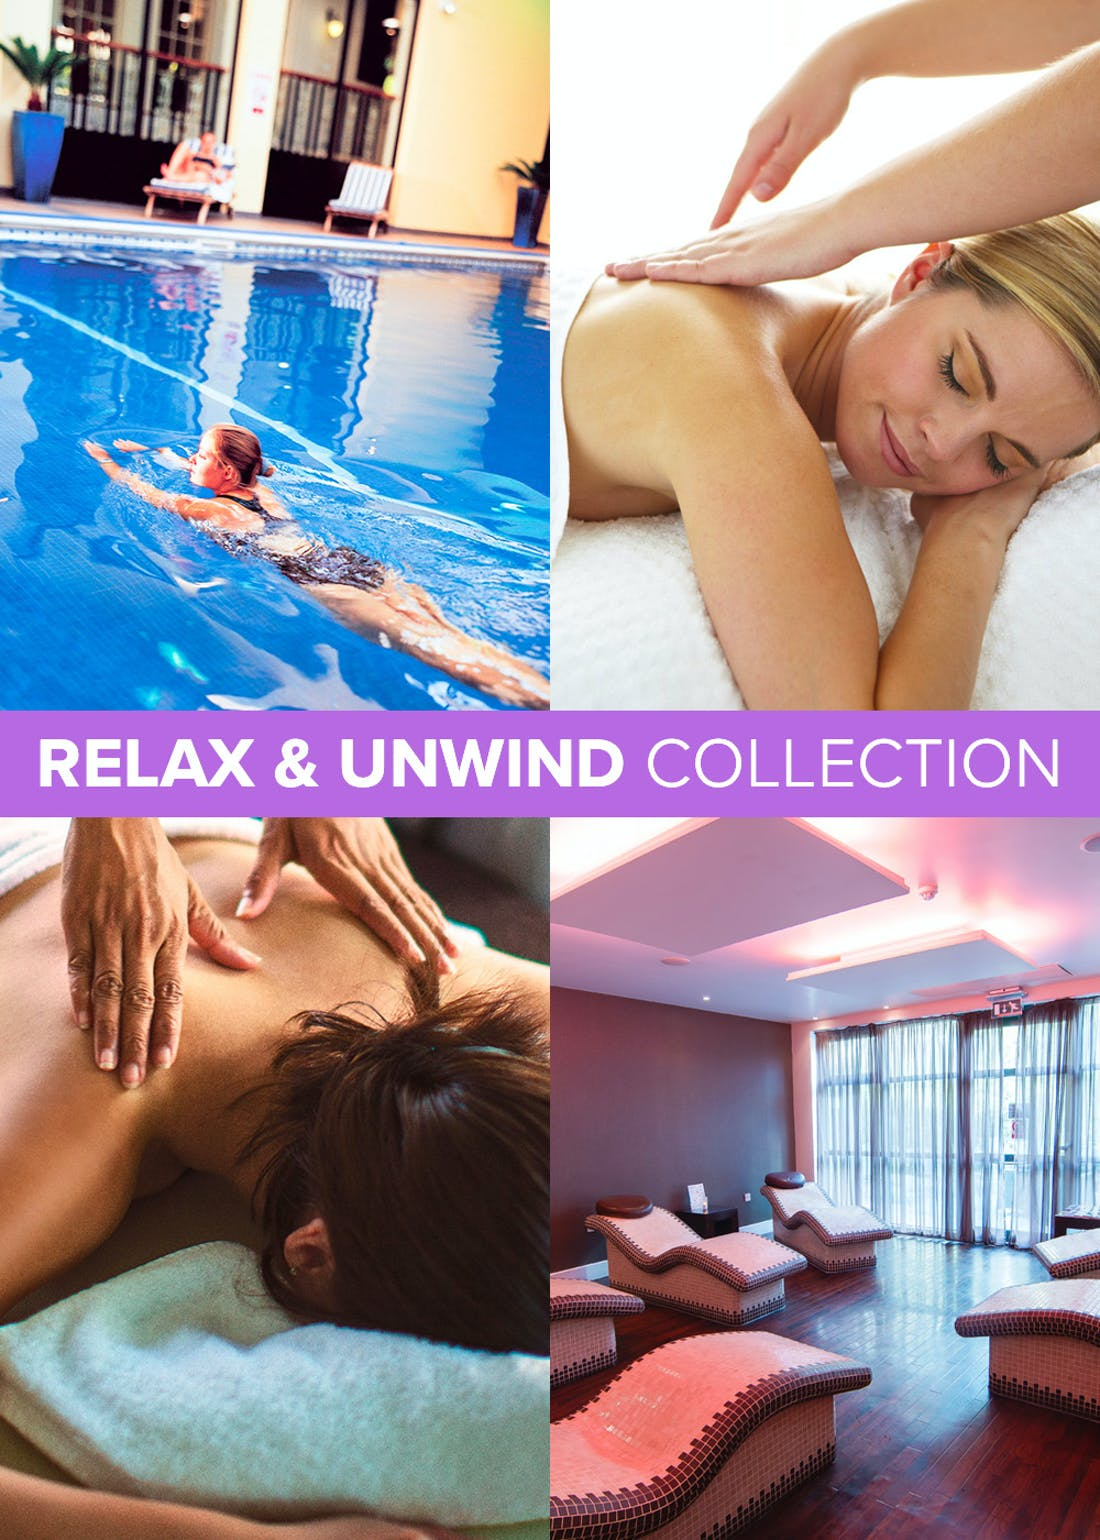 Virgin Experience Days Relax & Unwind Collection